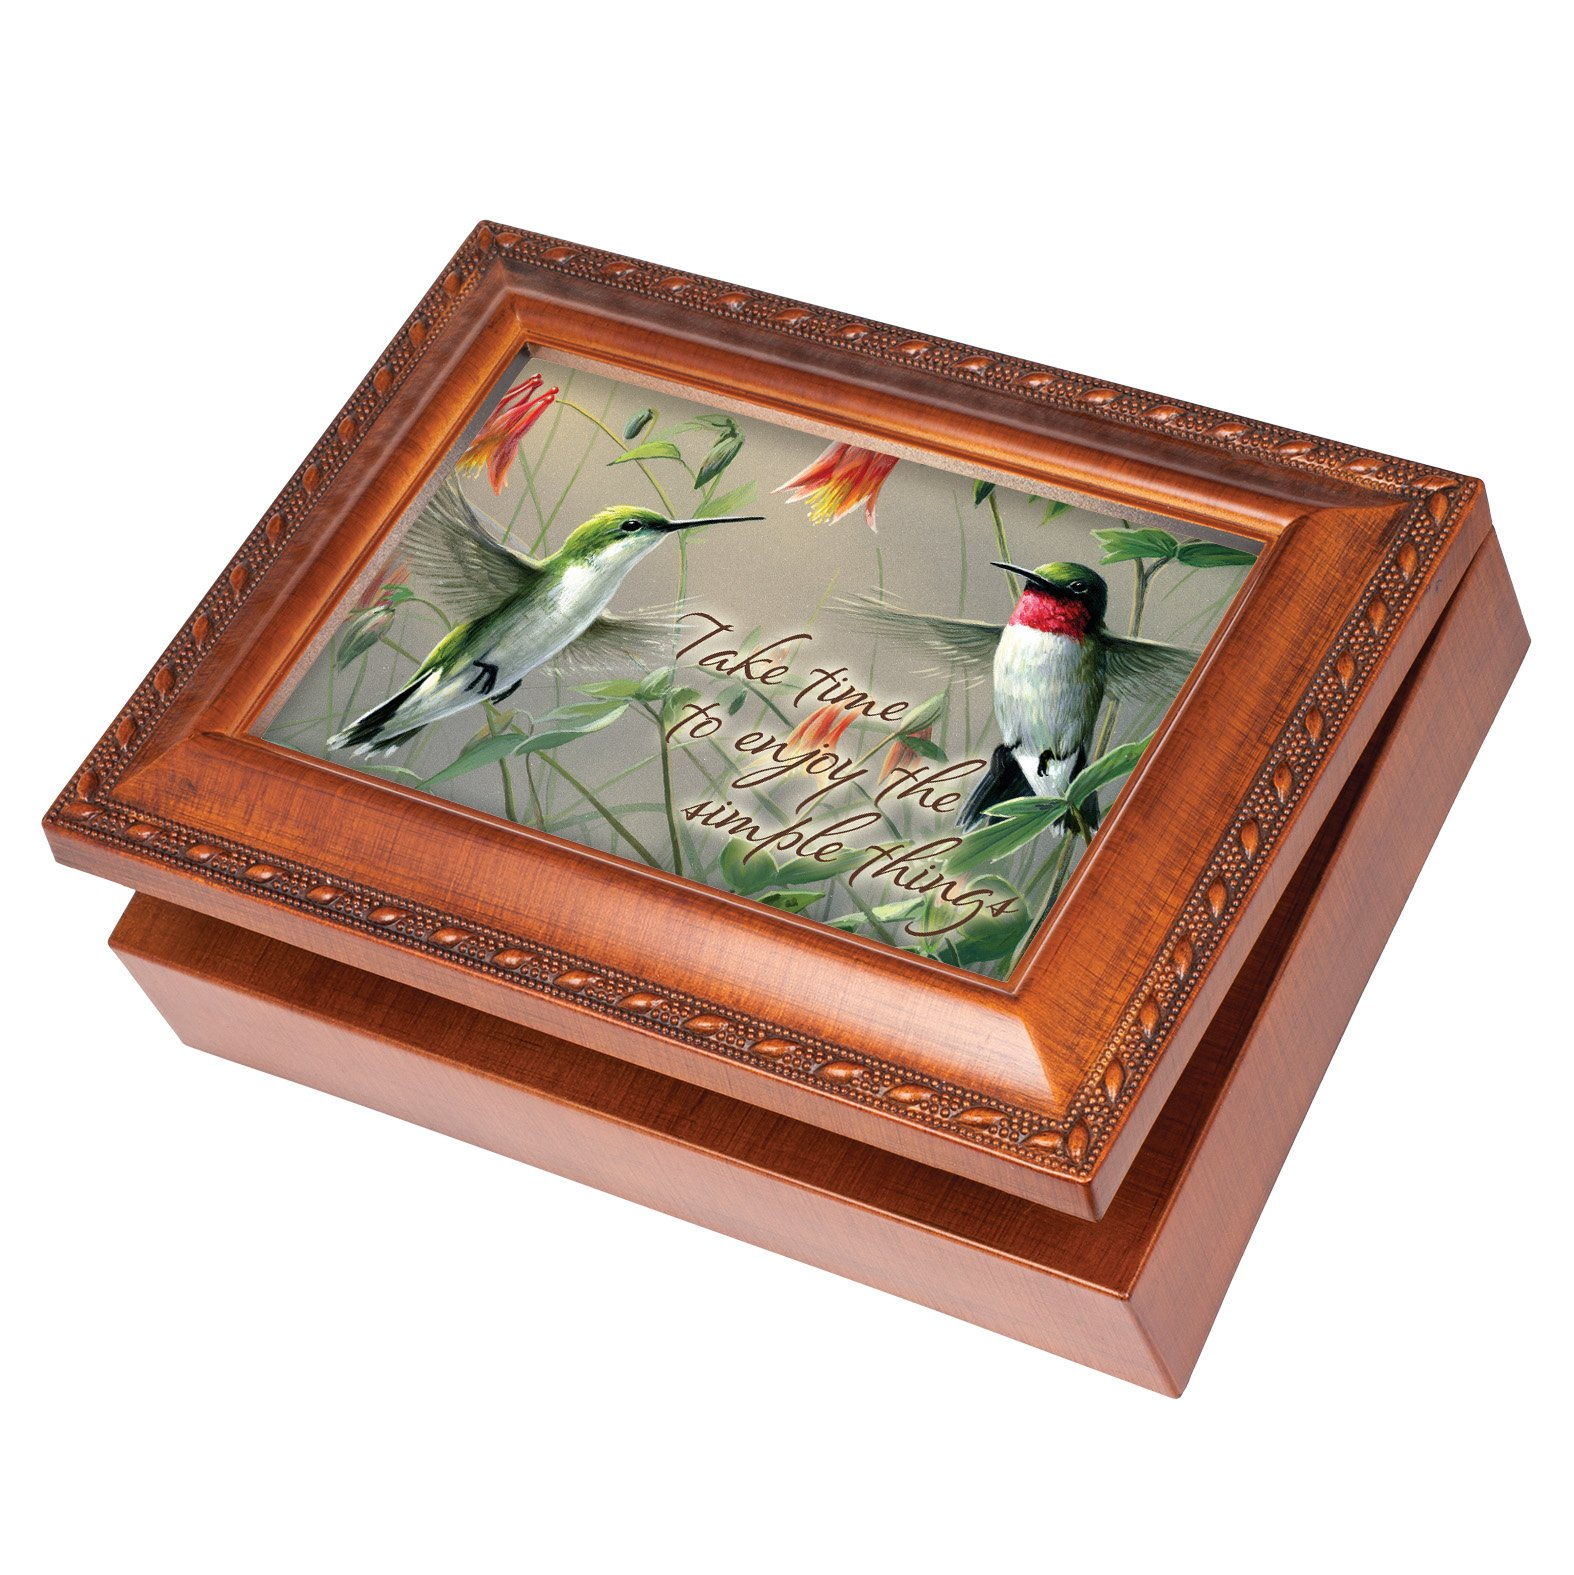 Hummingbirds Simple Things Wood Finish Jewelry Music Box Plays Tune You Are My Sunshine